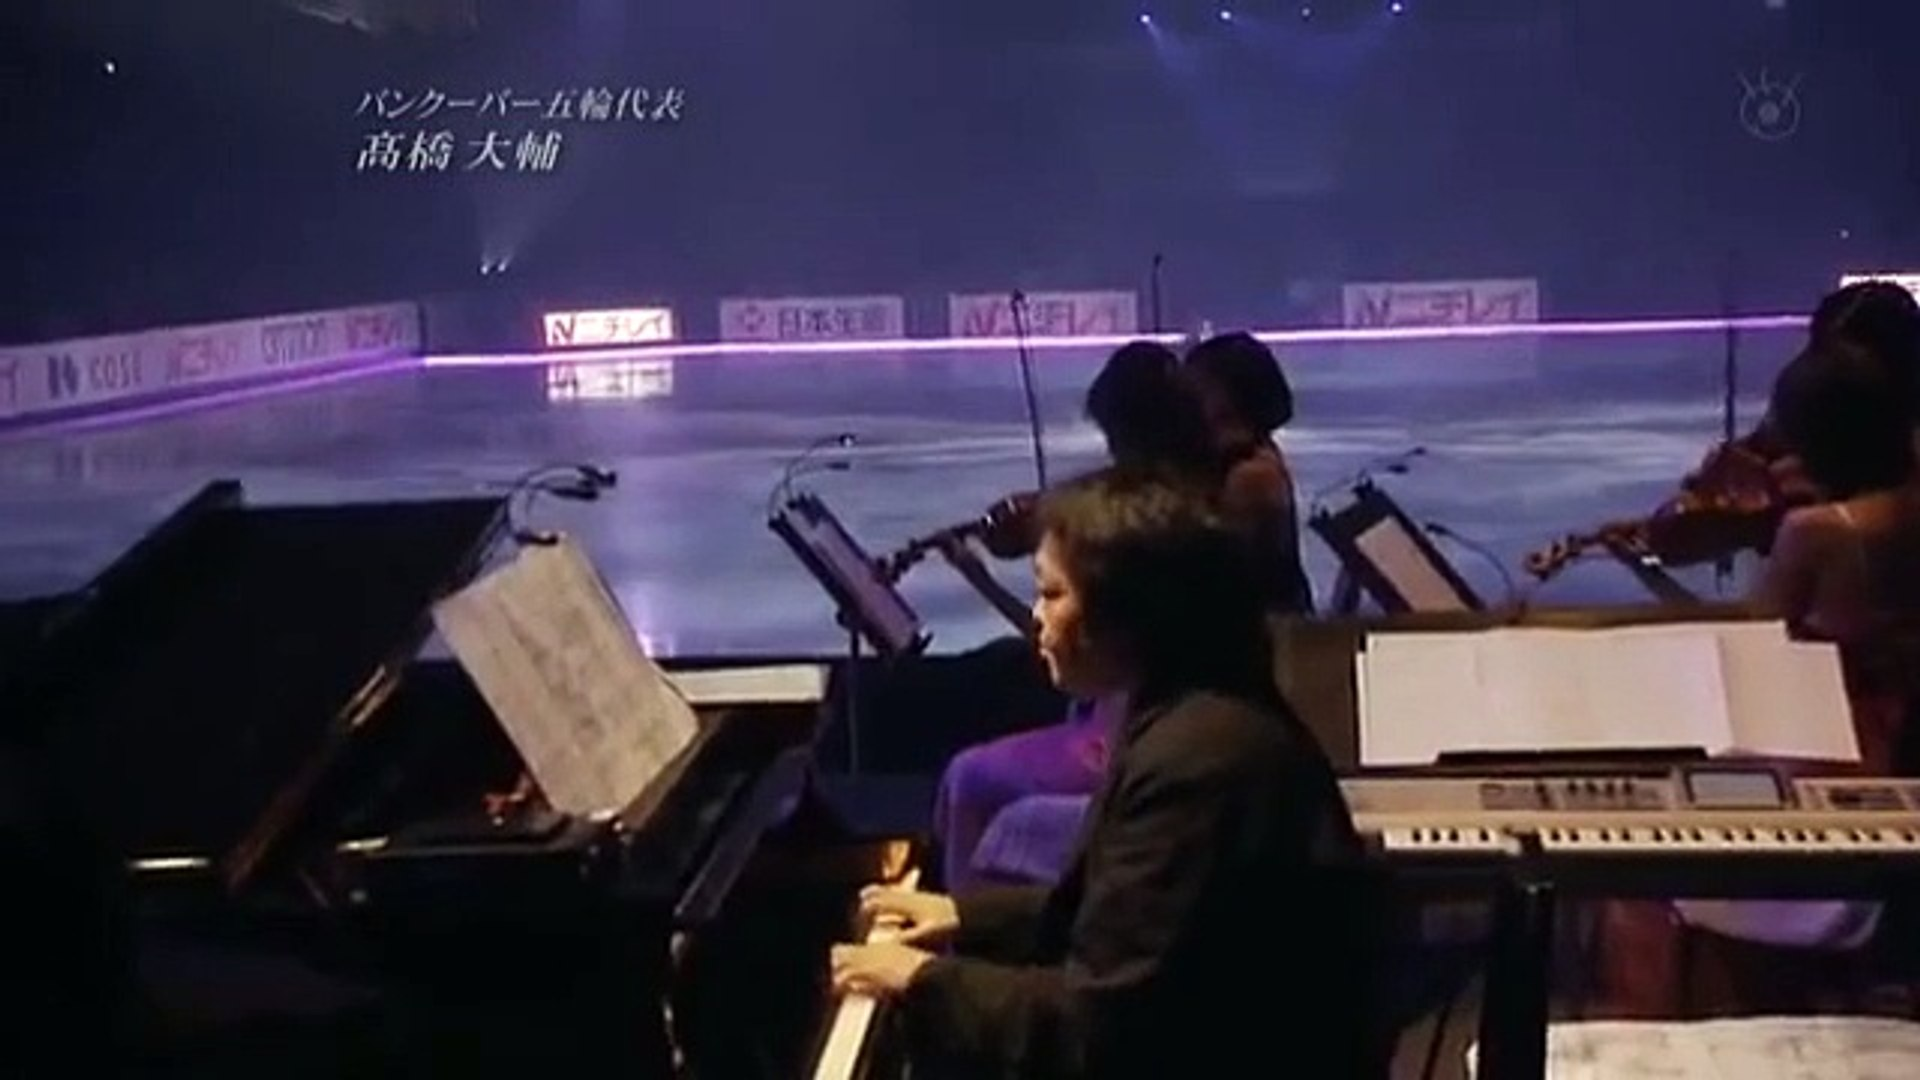 Daisuke Takahashi in Medalist on Ice 2009 with Luv Letter